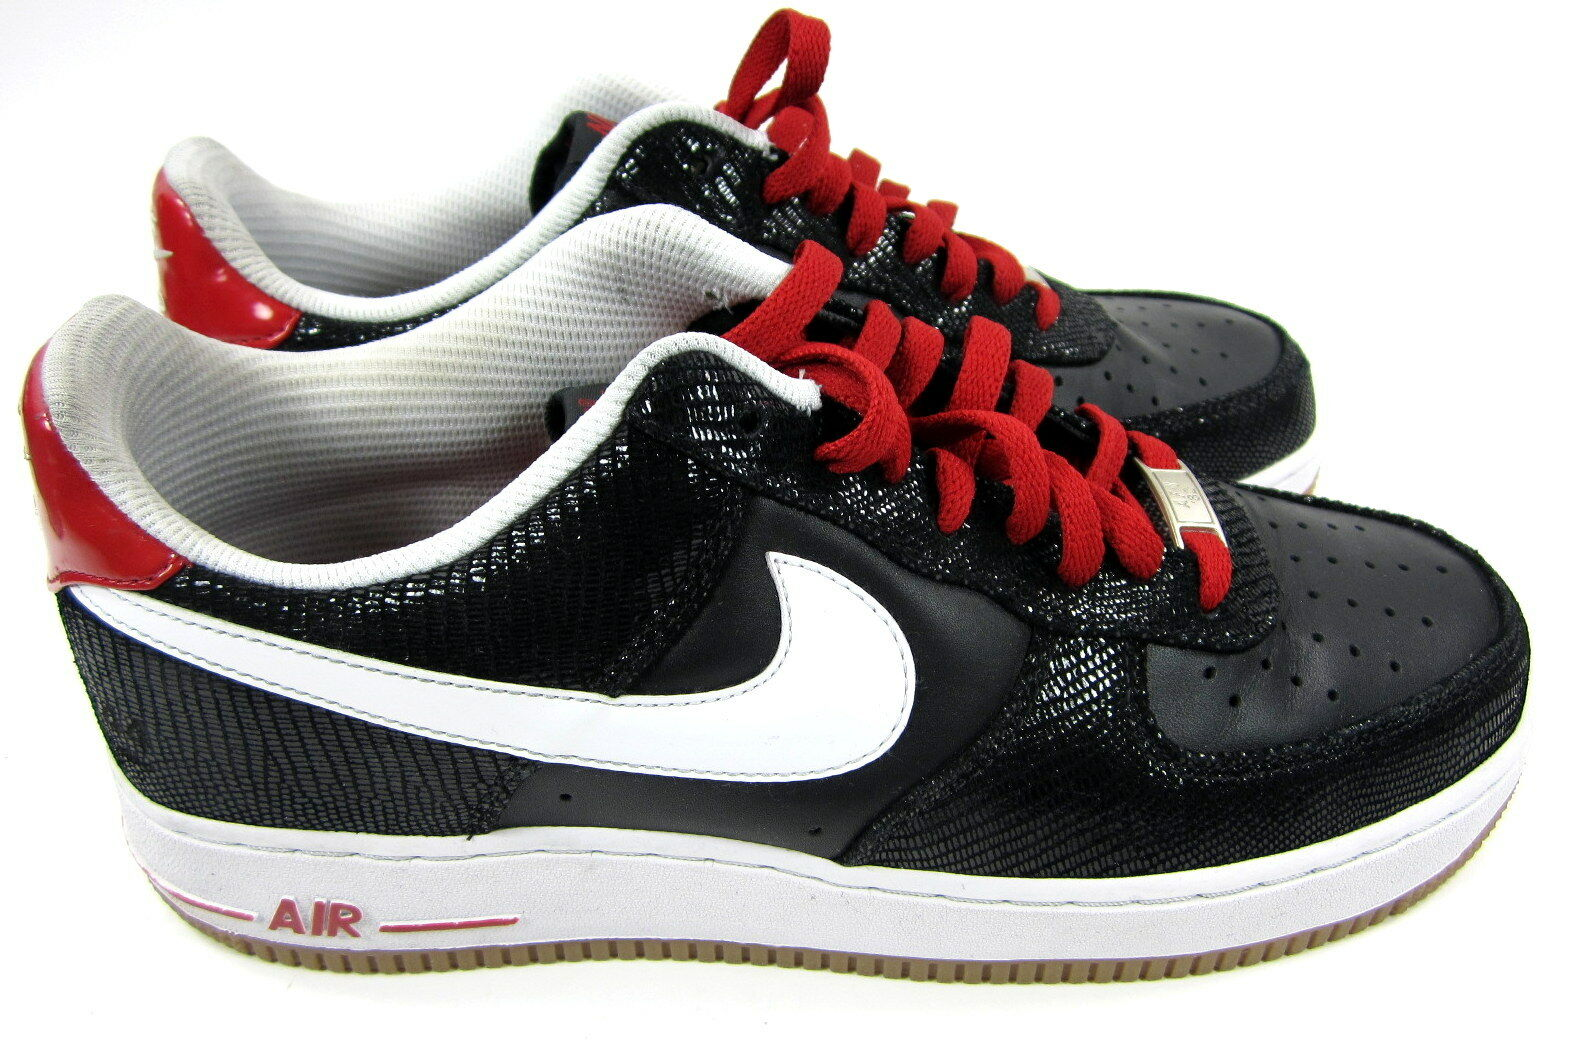 Nike Chaussures Air Force 1 Low Premium Noir /blanc /Red Baskets Baskets /Red 056009